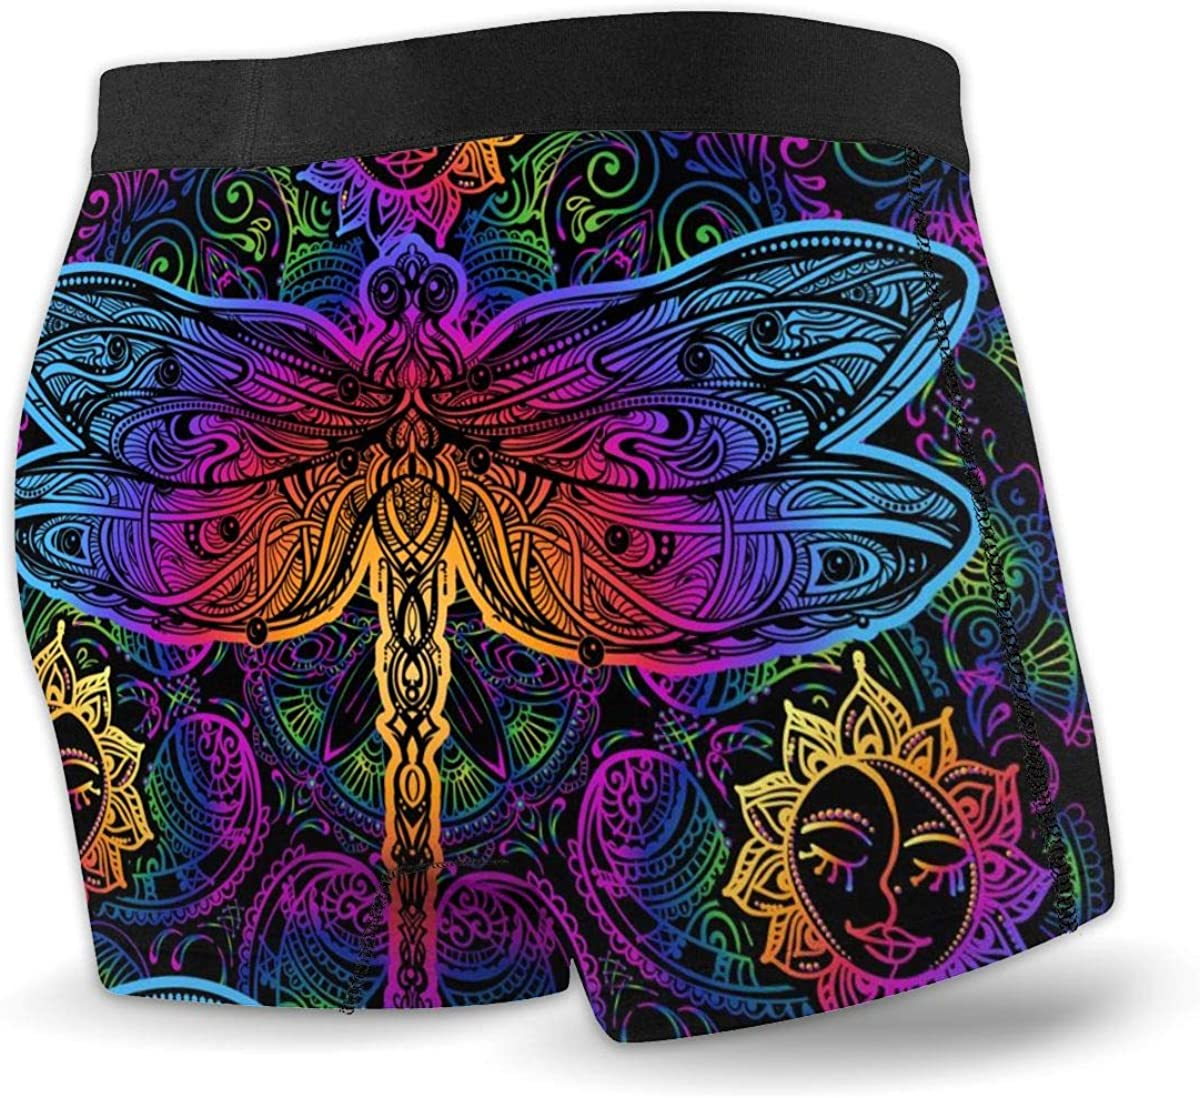 Mens Boxer Briefs Indian Mandala Paisley and Dragonfly Low Rise Trunks Breathable Bikini Underpants Boys Underwear